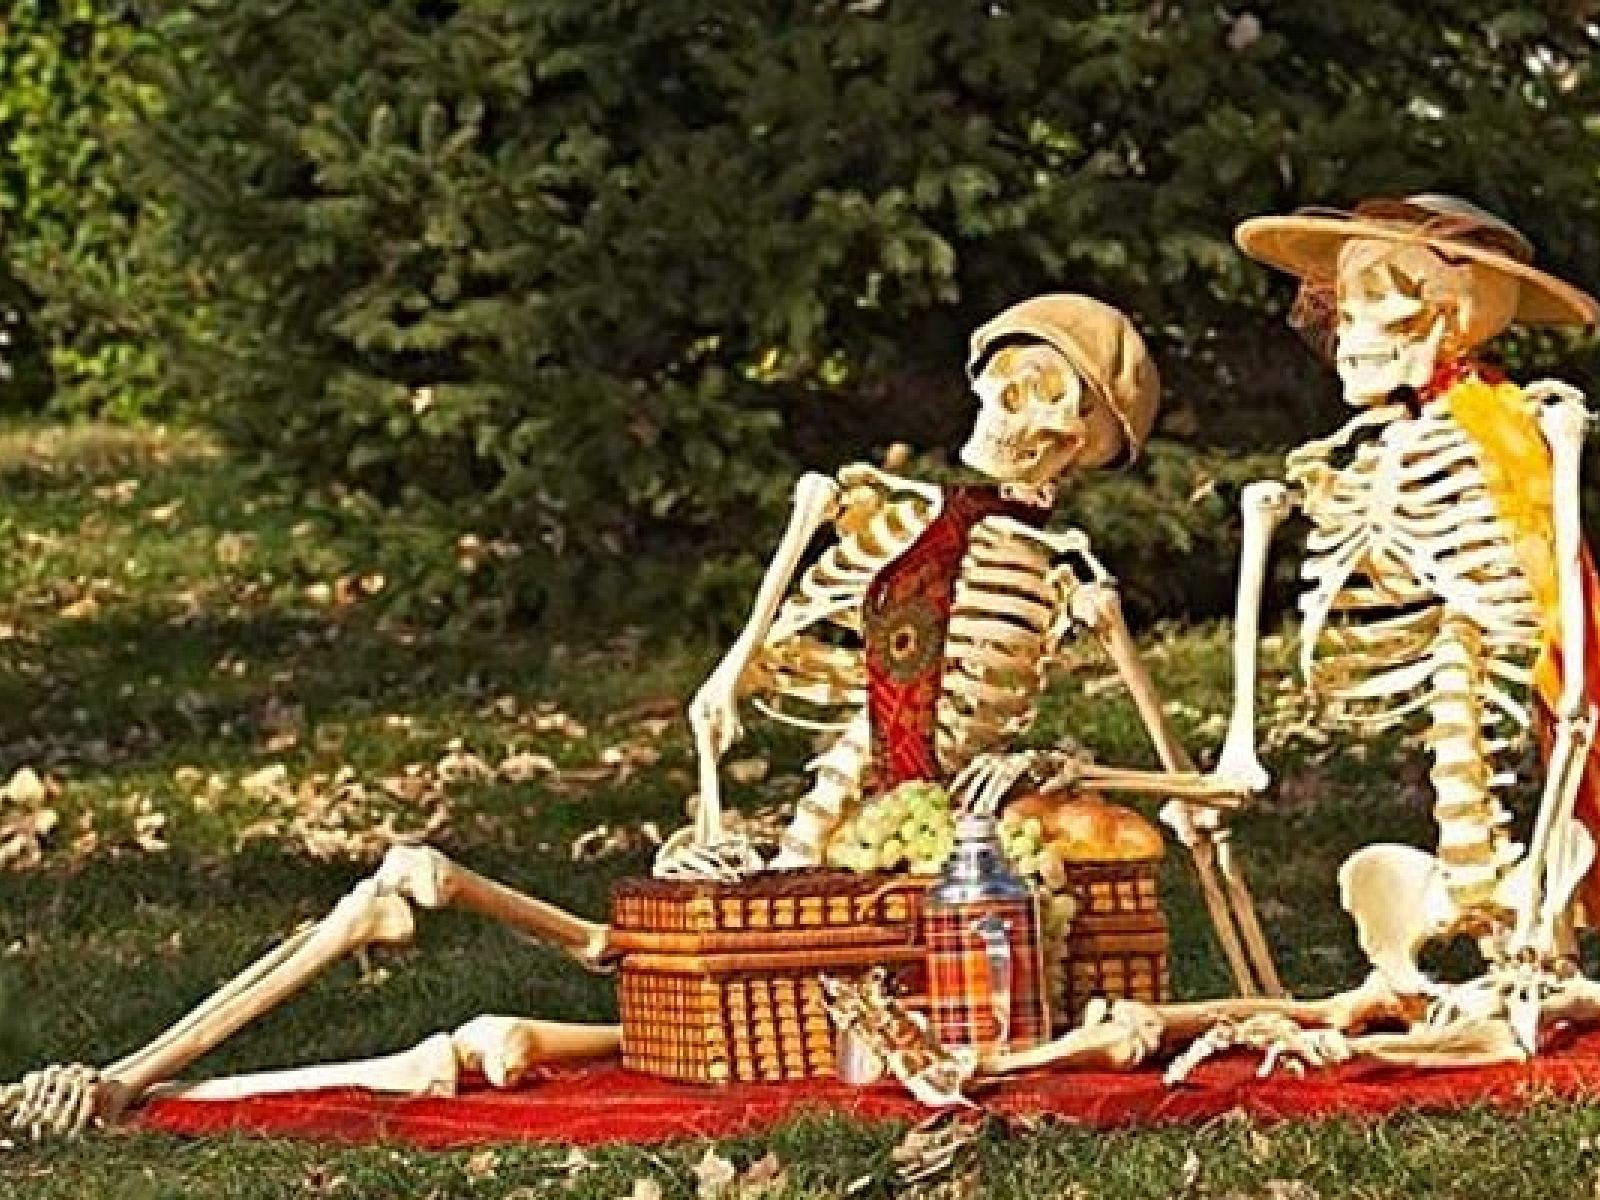 Main image for event titled Halloween Night Picnic at Heritage Square Museum